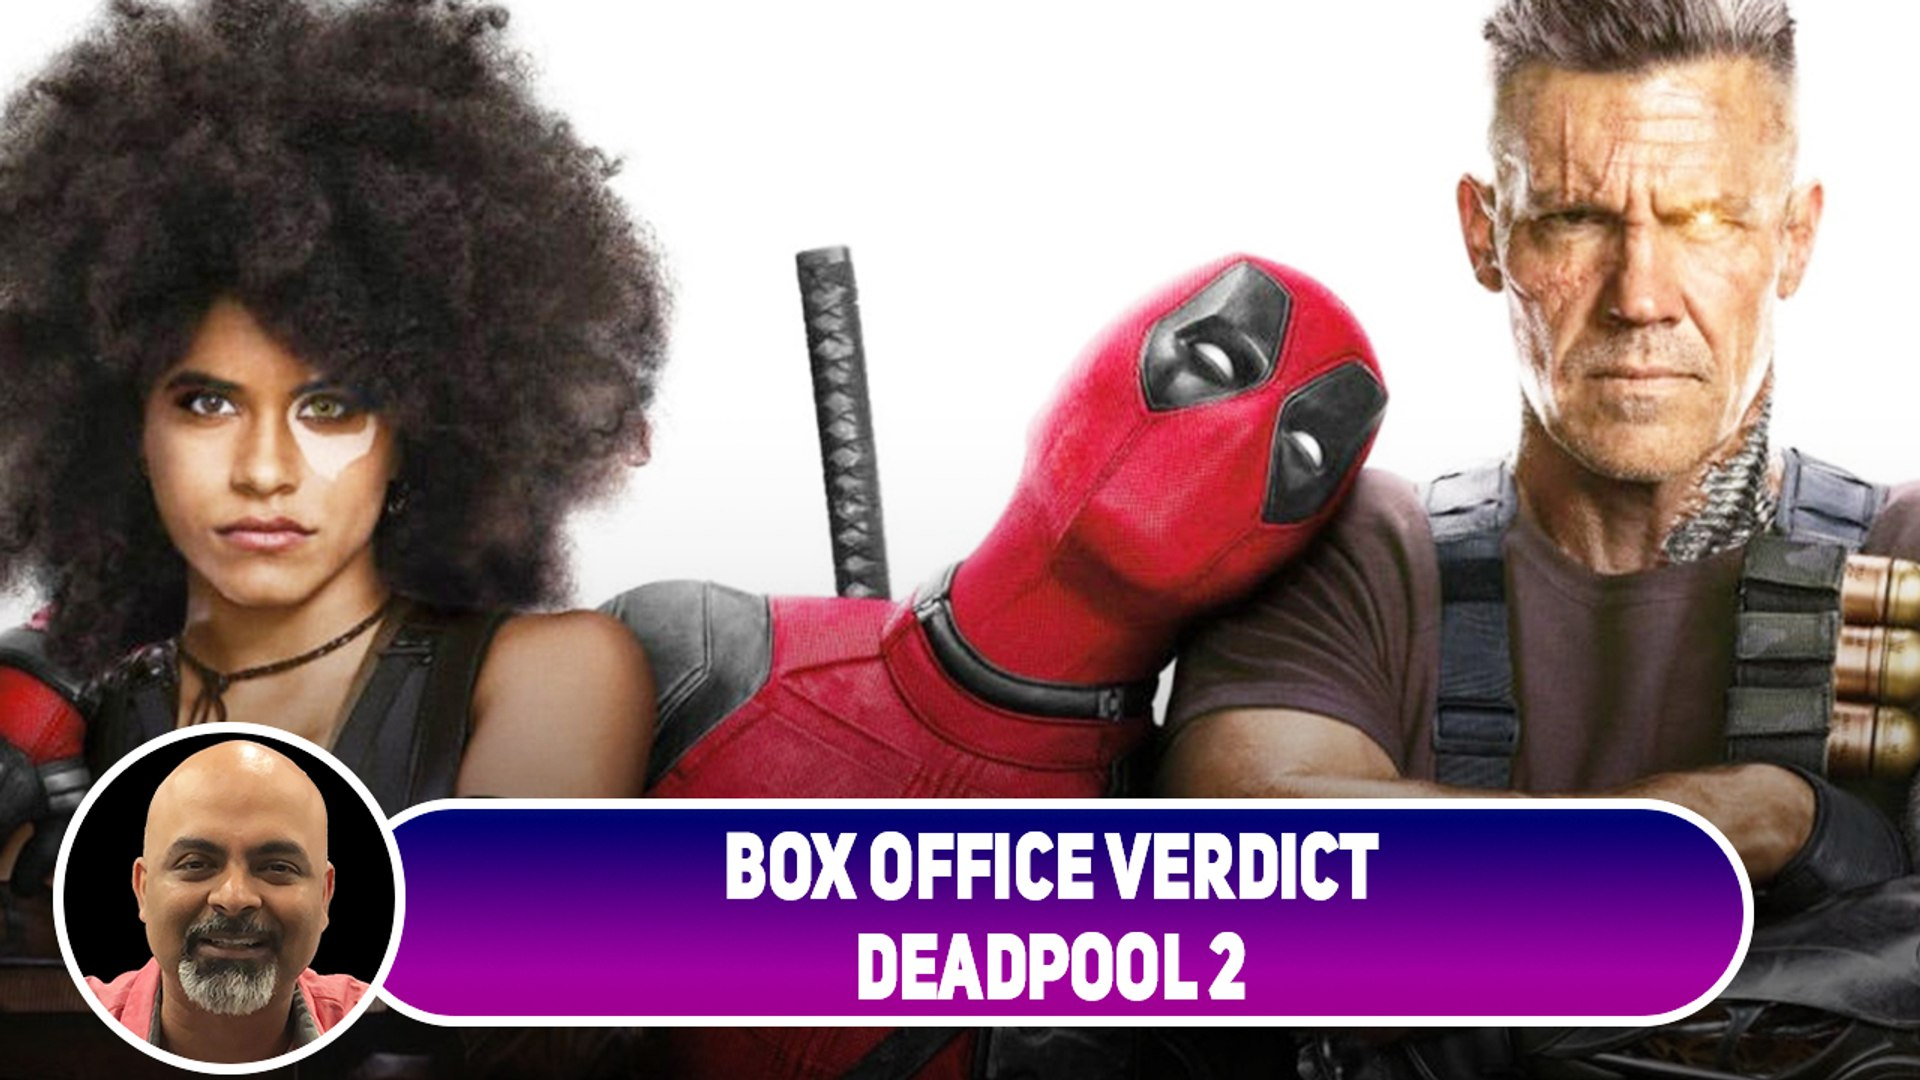 Deadpool 2 | Box Office Verdict: Did The Film Out Do The First Deadpool In India?